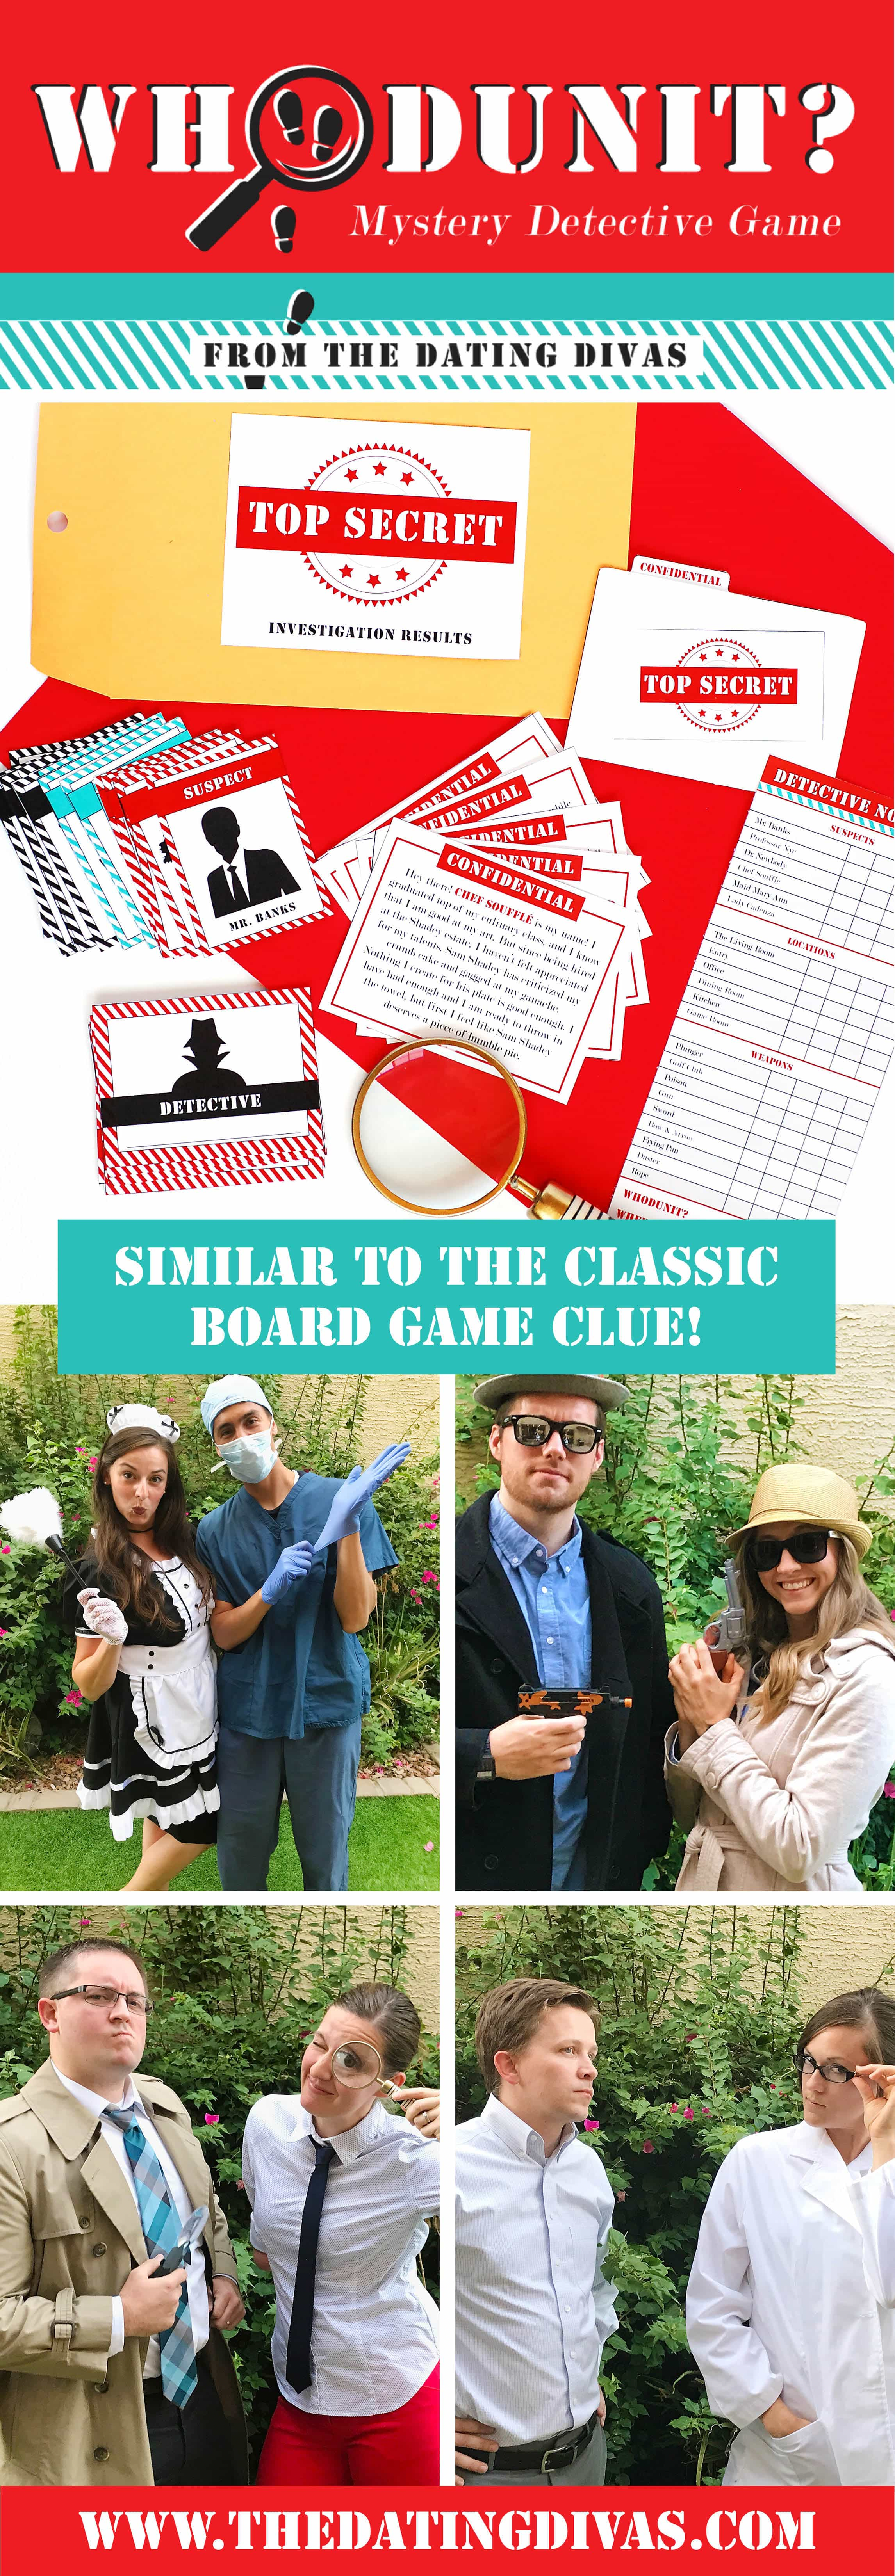 As one of the best DIY detective games out there, enjoy this family friendly Whodunit Mystery Detective Game for all ages! #TheDatingDivas #DIYMurderMystery #Whodunit